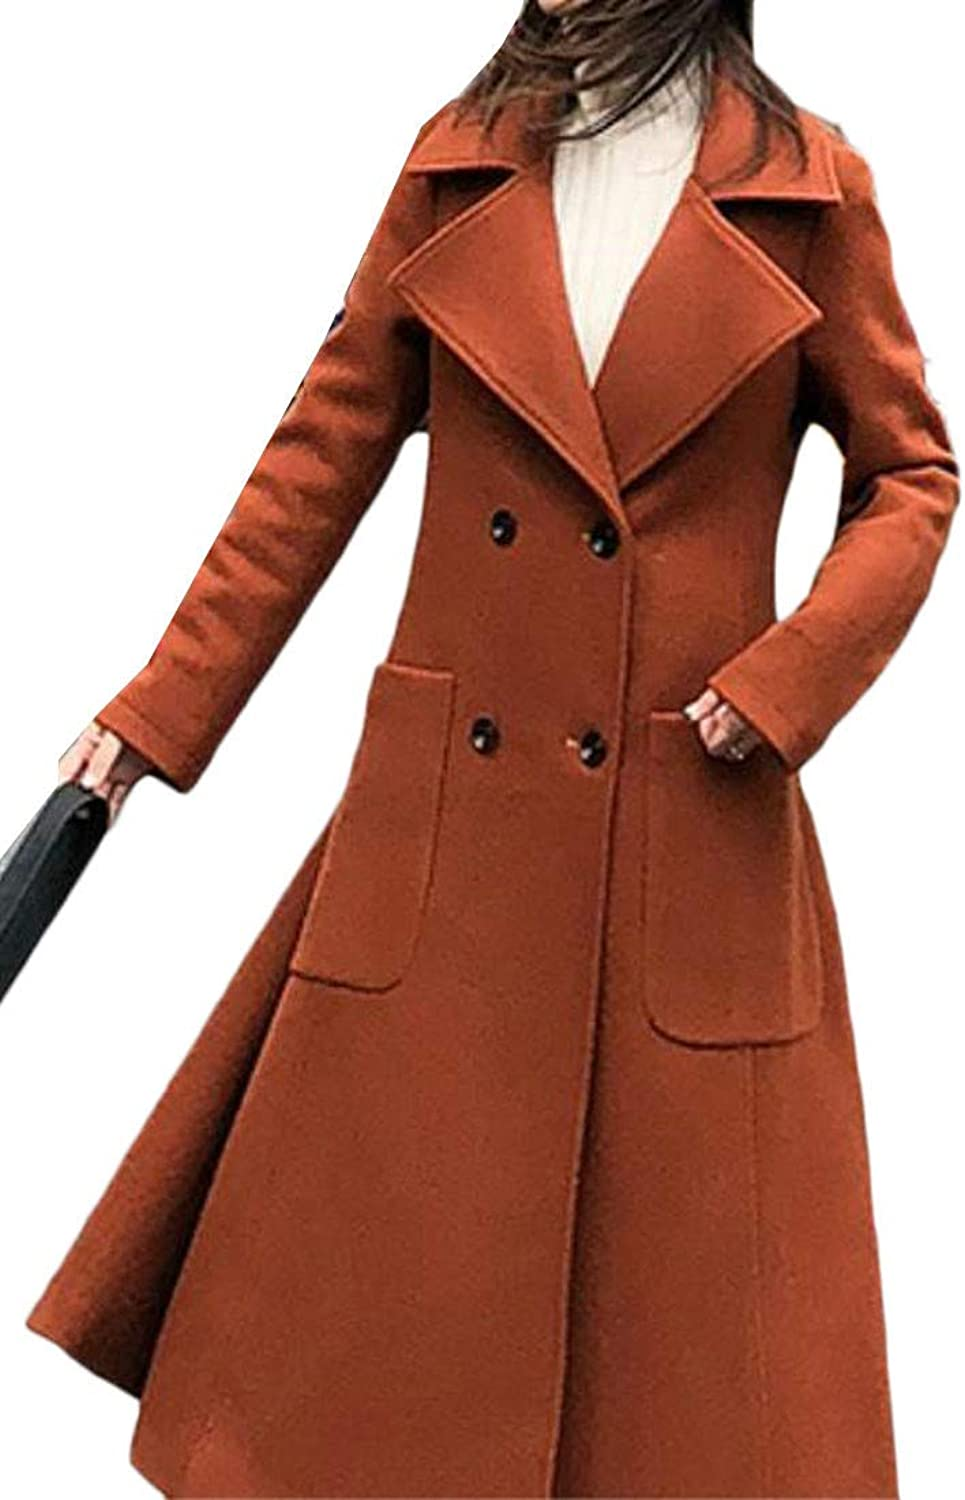 Cromoncent Women's Thicken Lapel Double Breasted Woolen Long Jacket Outwear Trench Coat